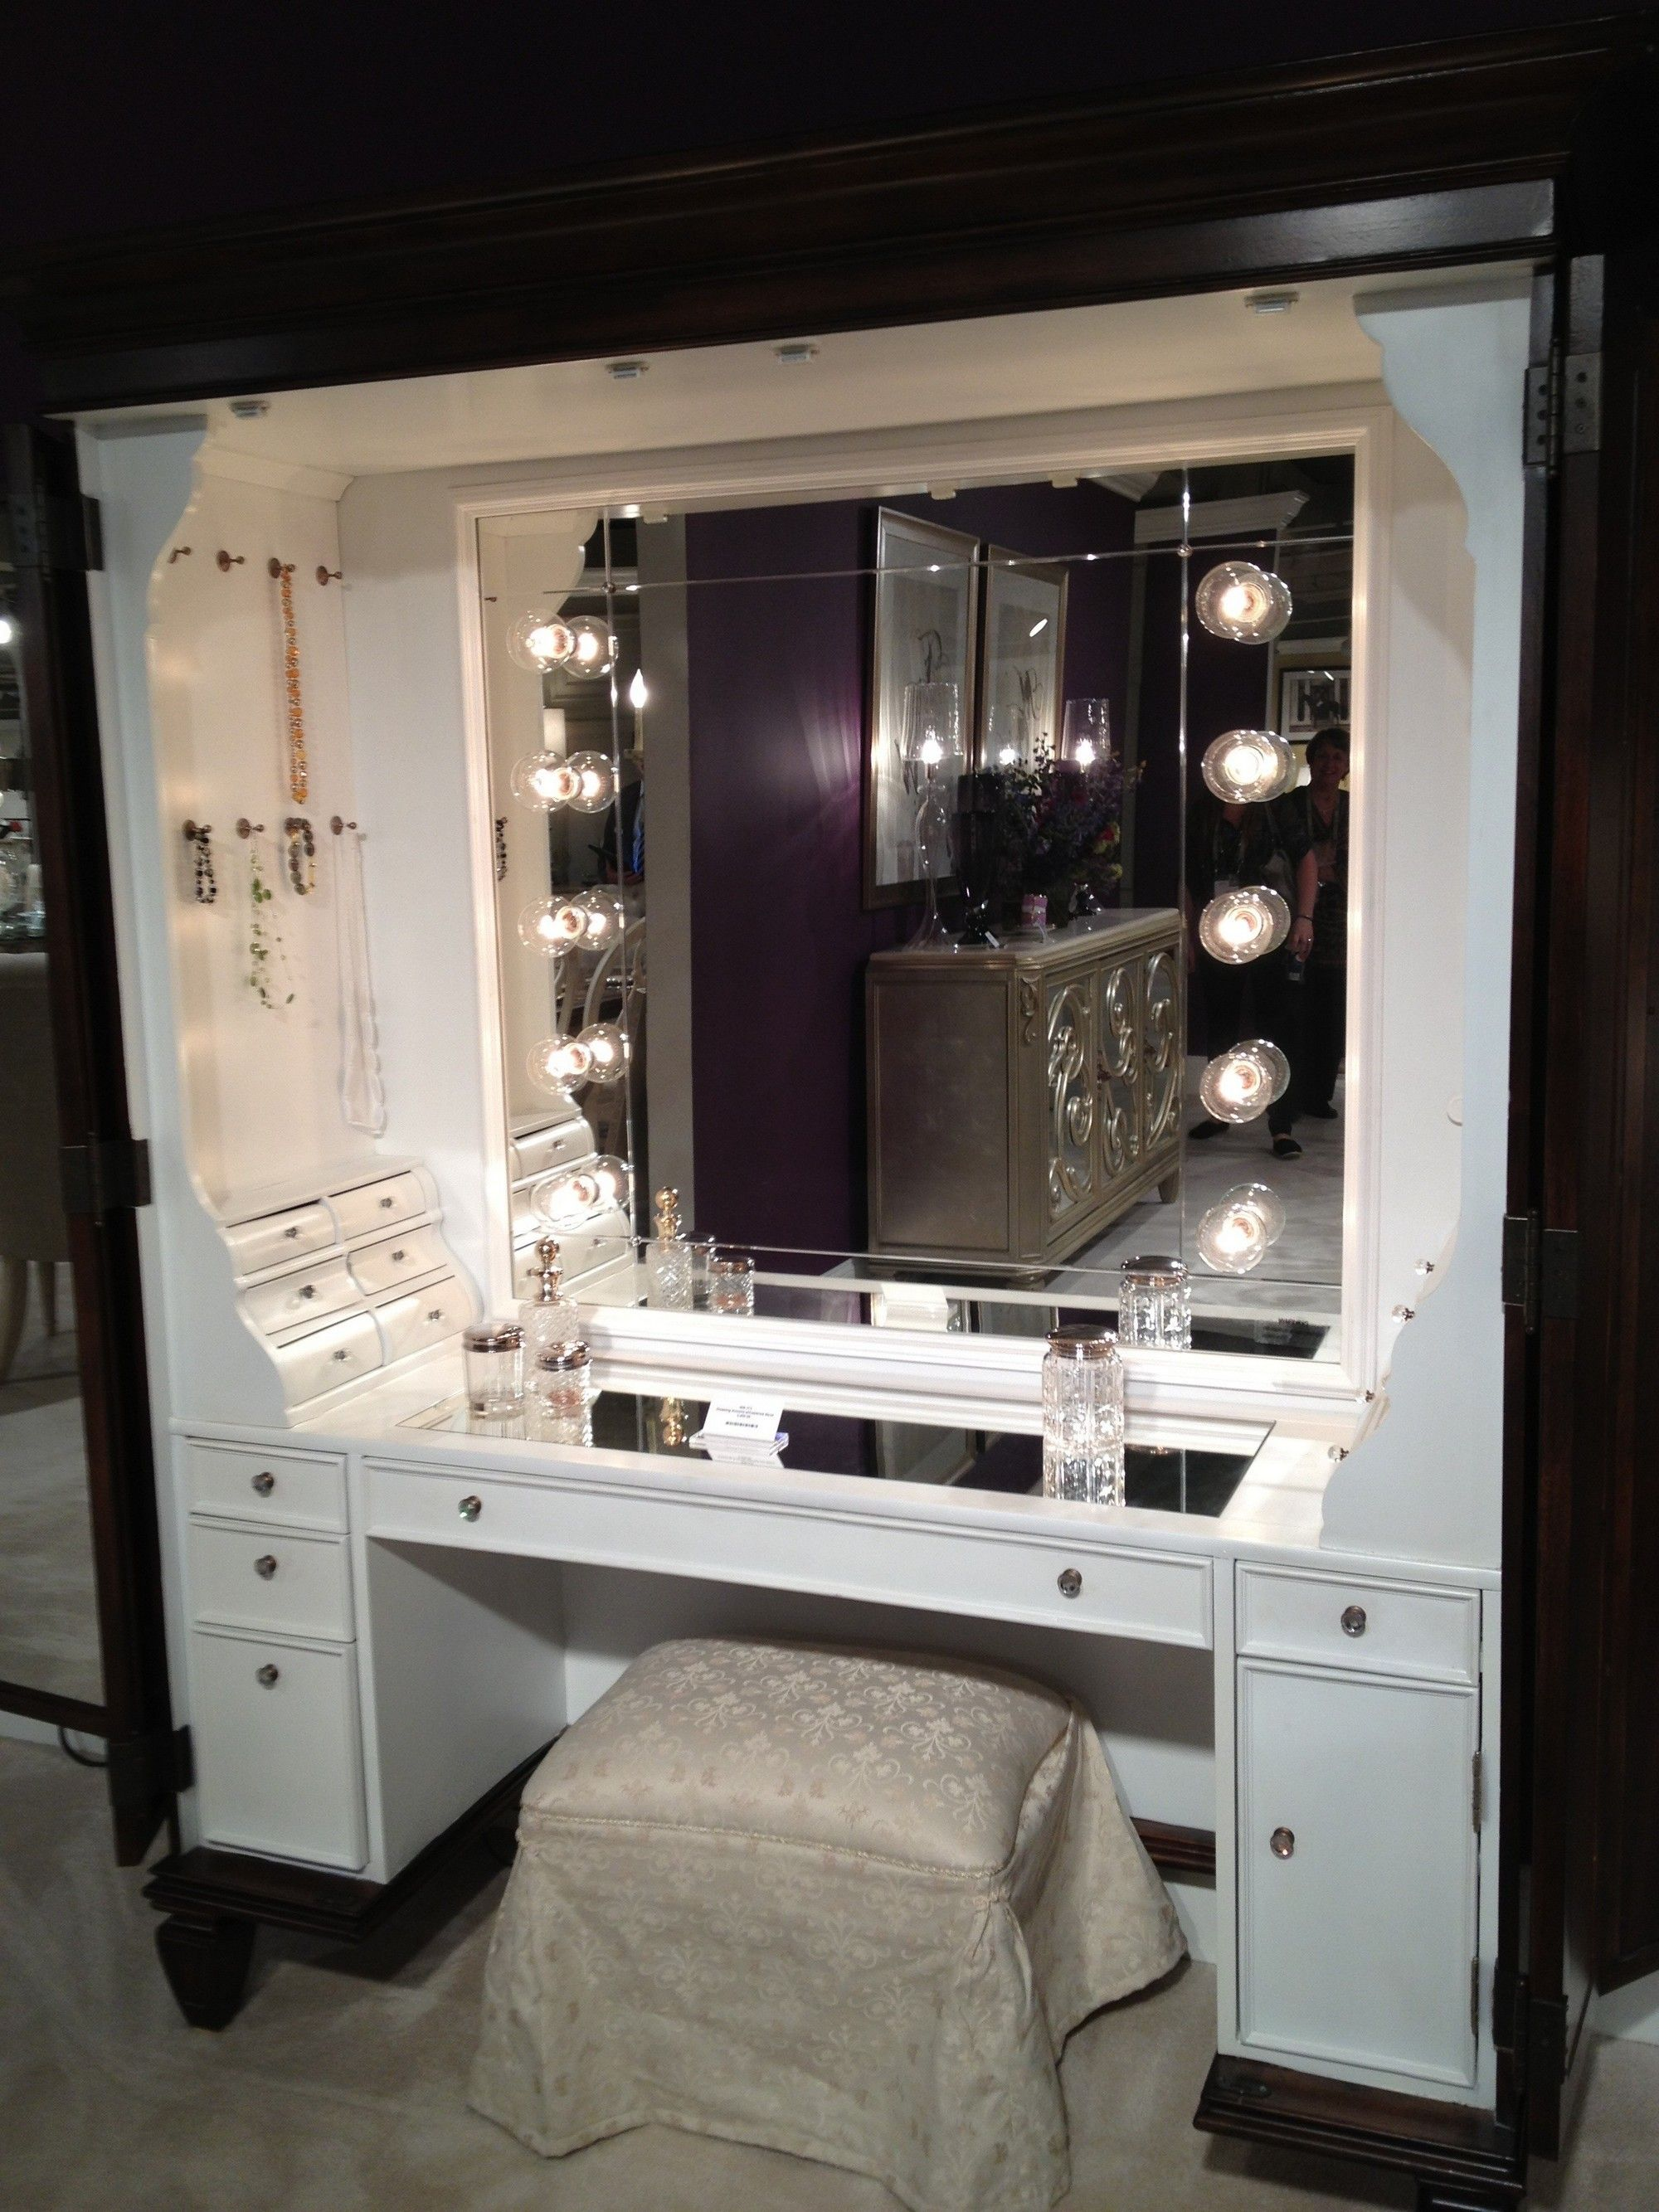 Canvas of Makeup Vanity Table with Lights Diy vanity